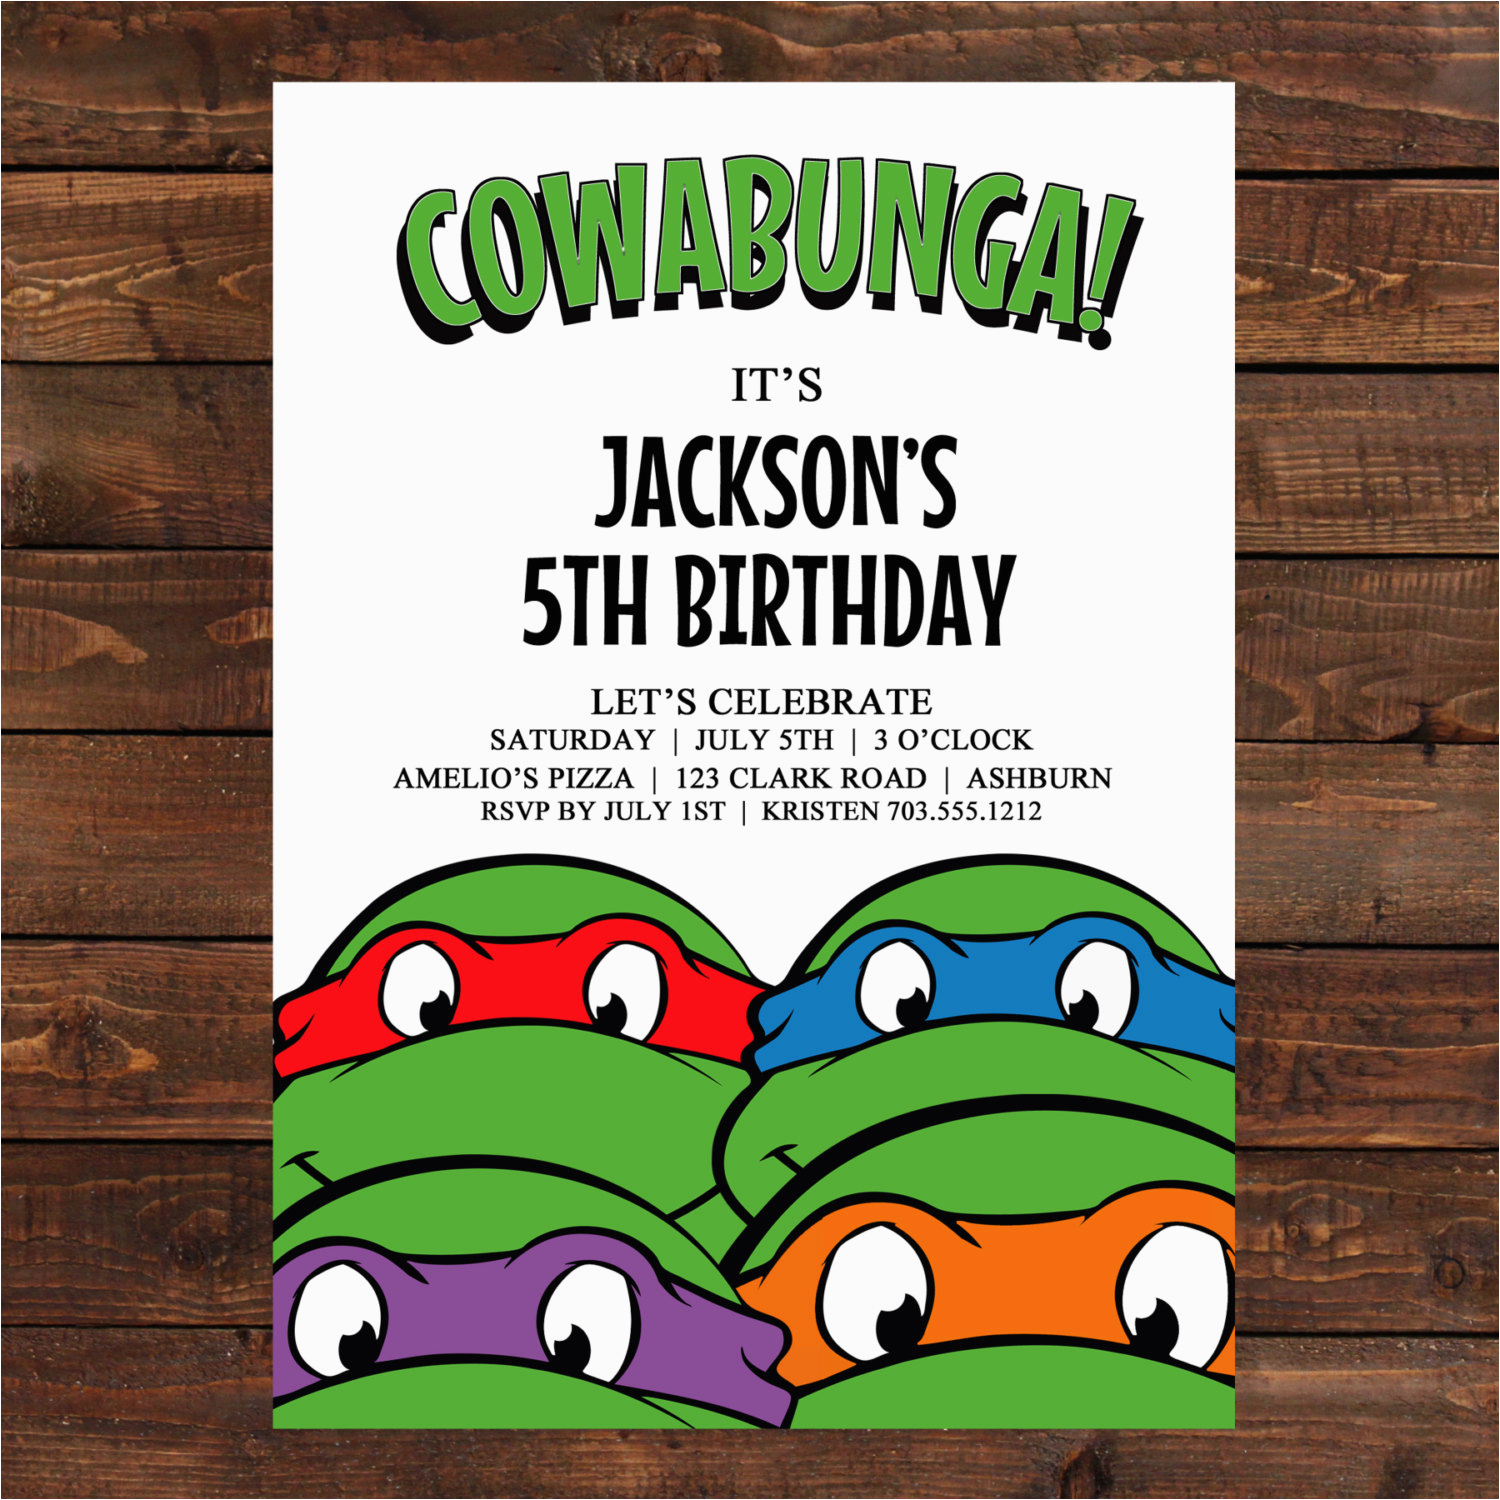 Teenage Mutant Ninja Turtles Birthday Invites | Birthdaybuzz - Free Printable Ninja Turtle Birthday Invitations